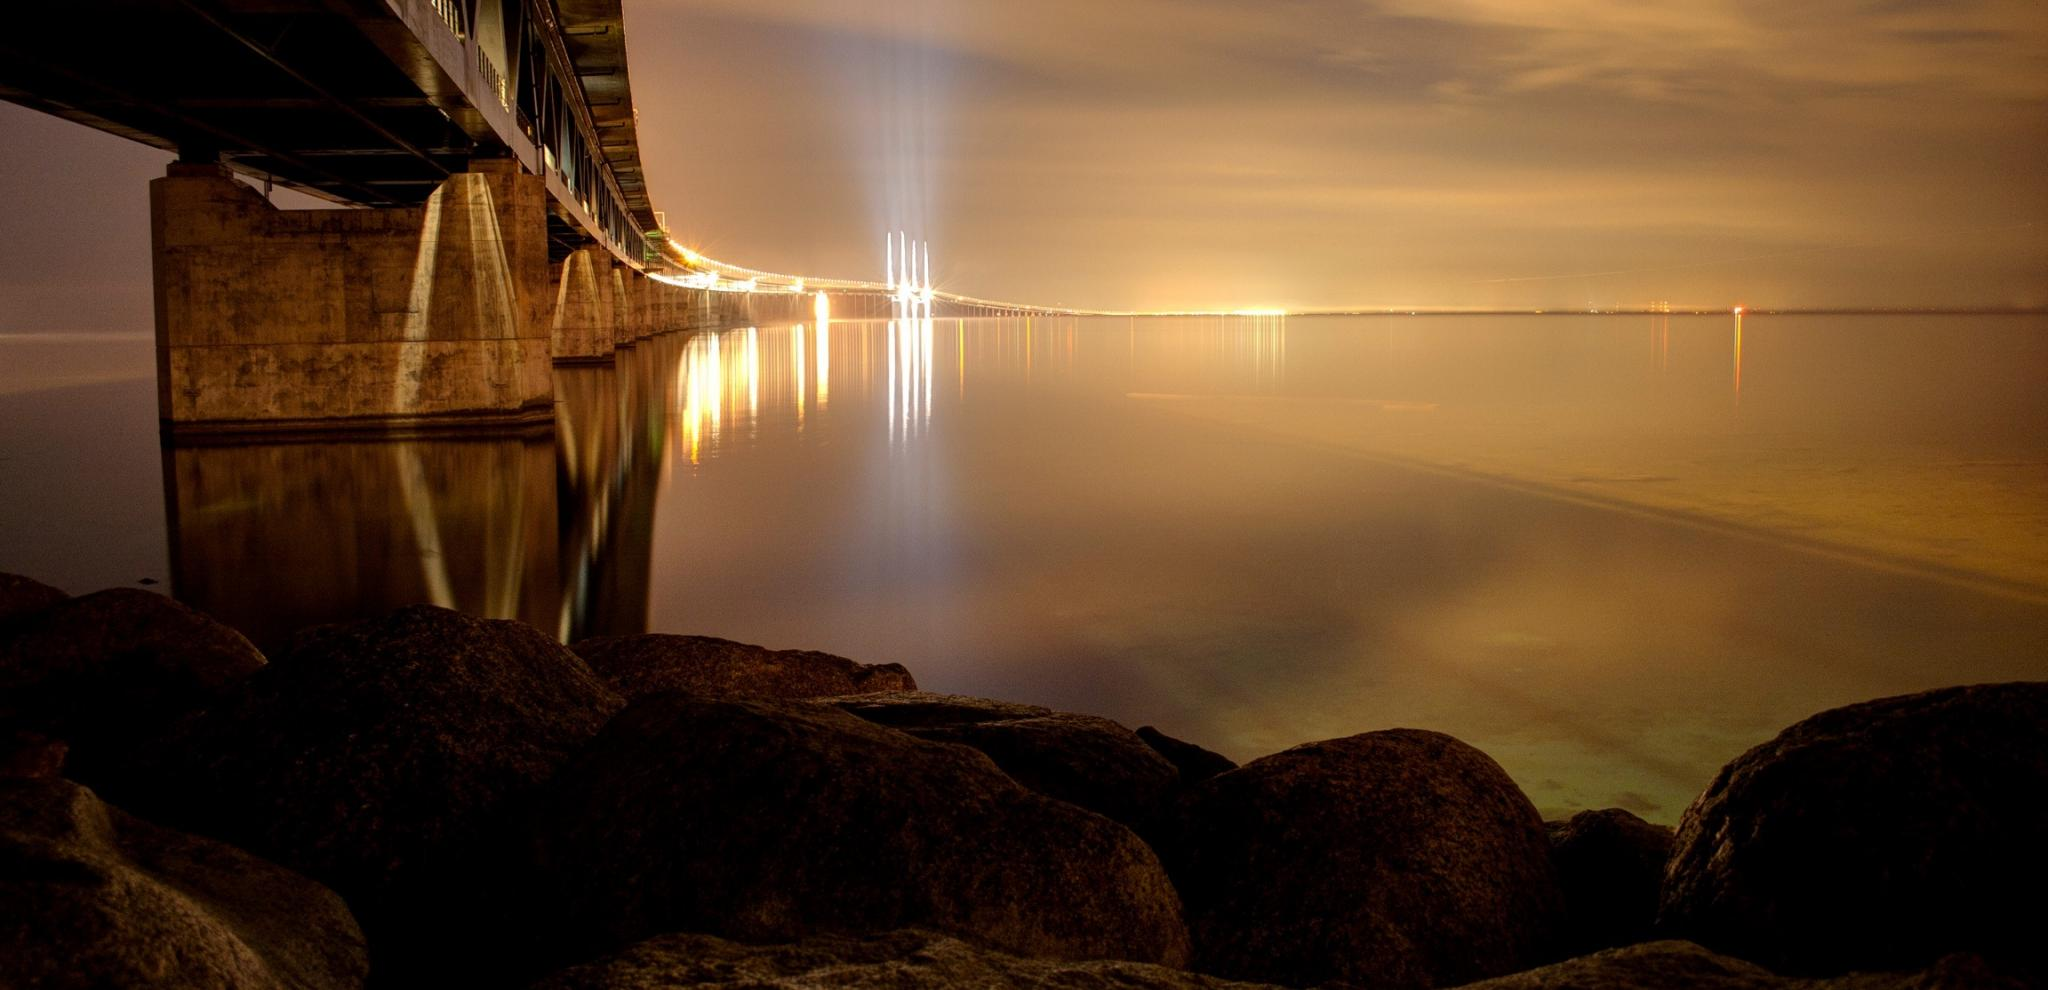 The Öresund Bridge lighting up the ocean